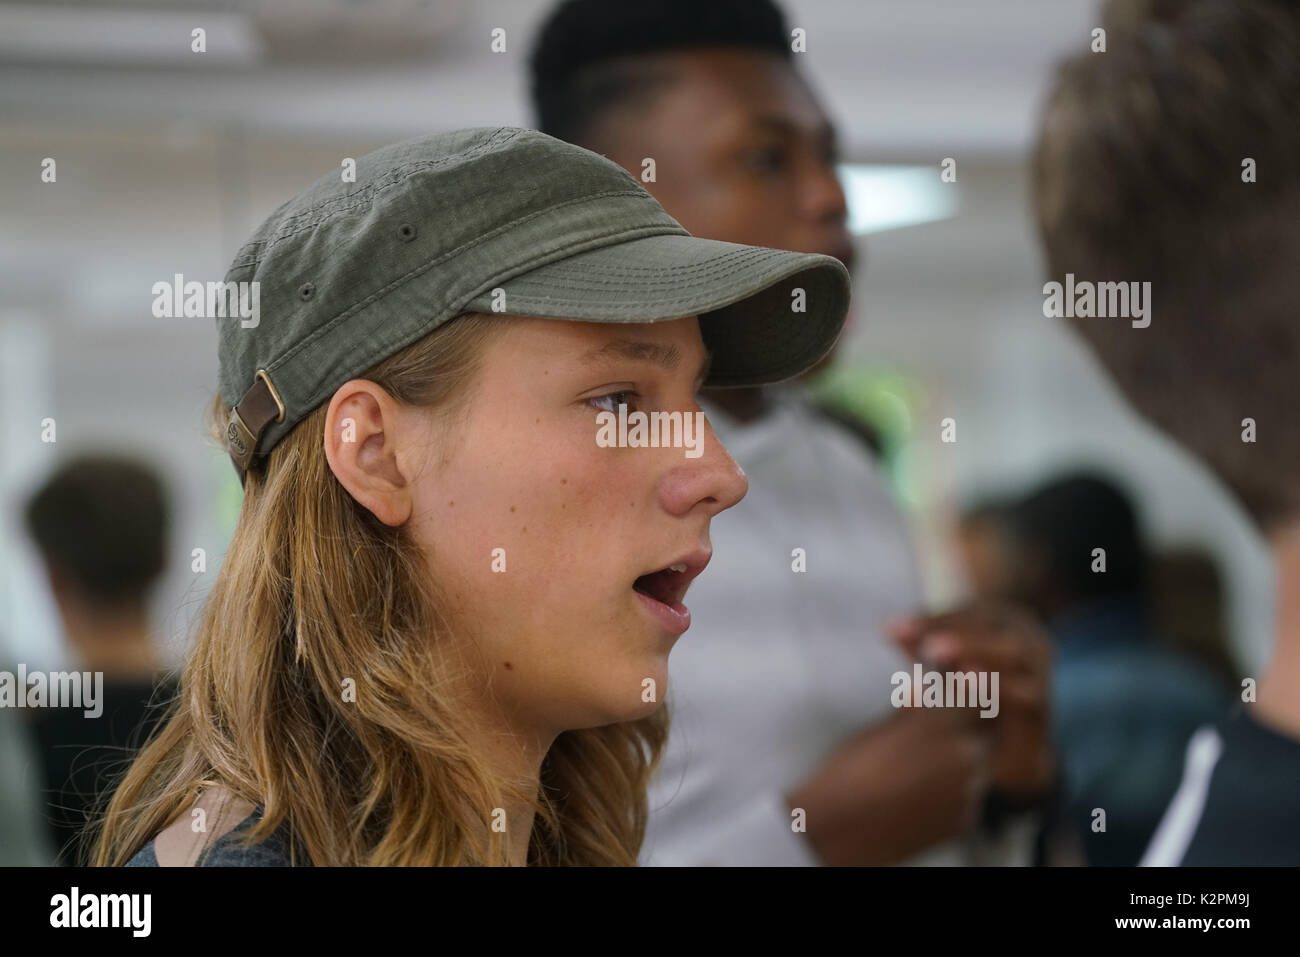 Shaftesbury Ave, London, England, UK. 31st Aug, 2017. Roadstead, preparing for Mayor's Gigs competition at the Umbrella Rooms music studios before going head-to-head at the Gigs Grand Final over the weekend. Credit: See Li/Alamy Live News Stock Photo